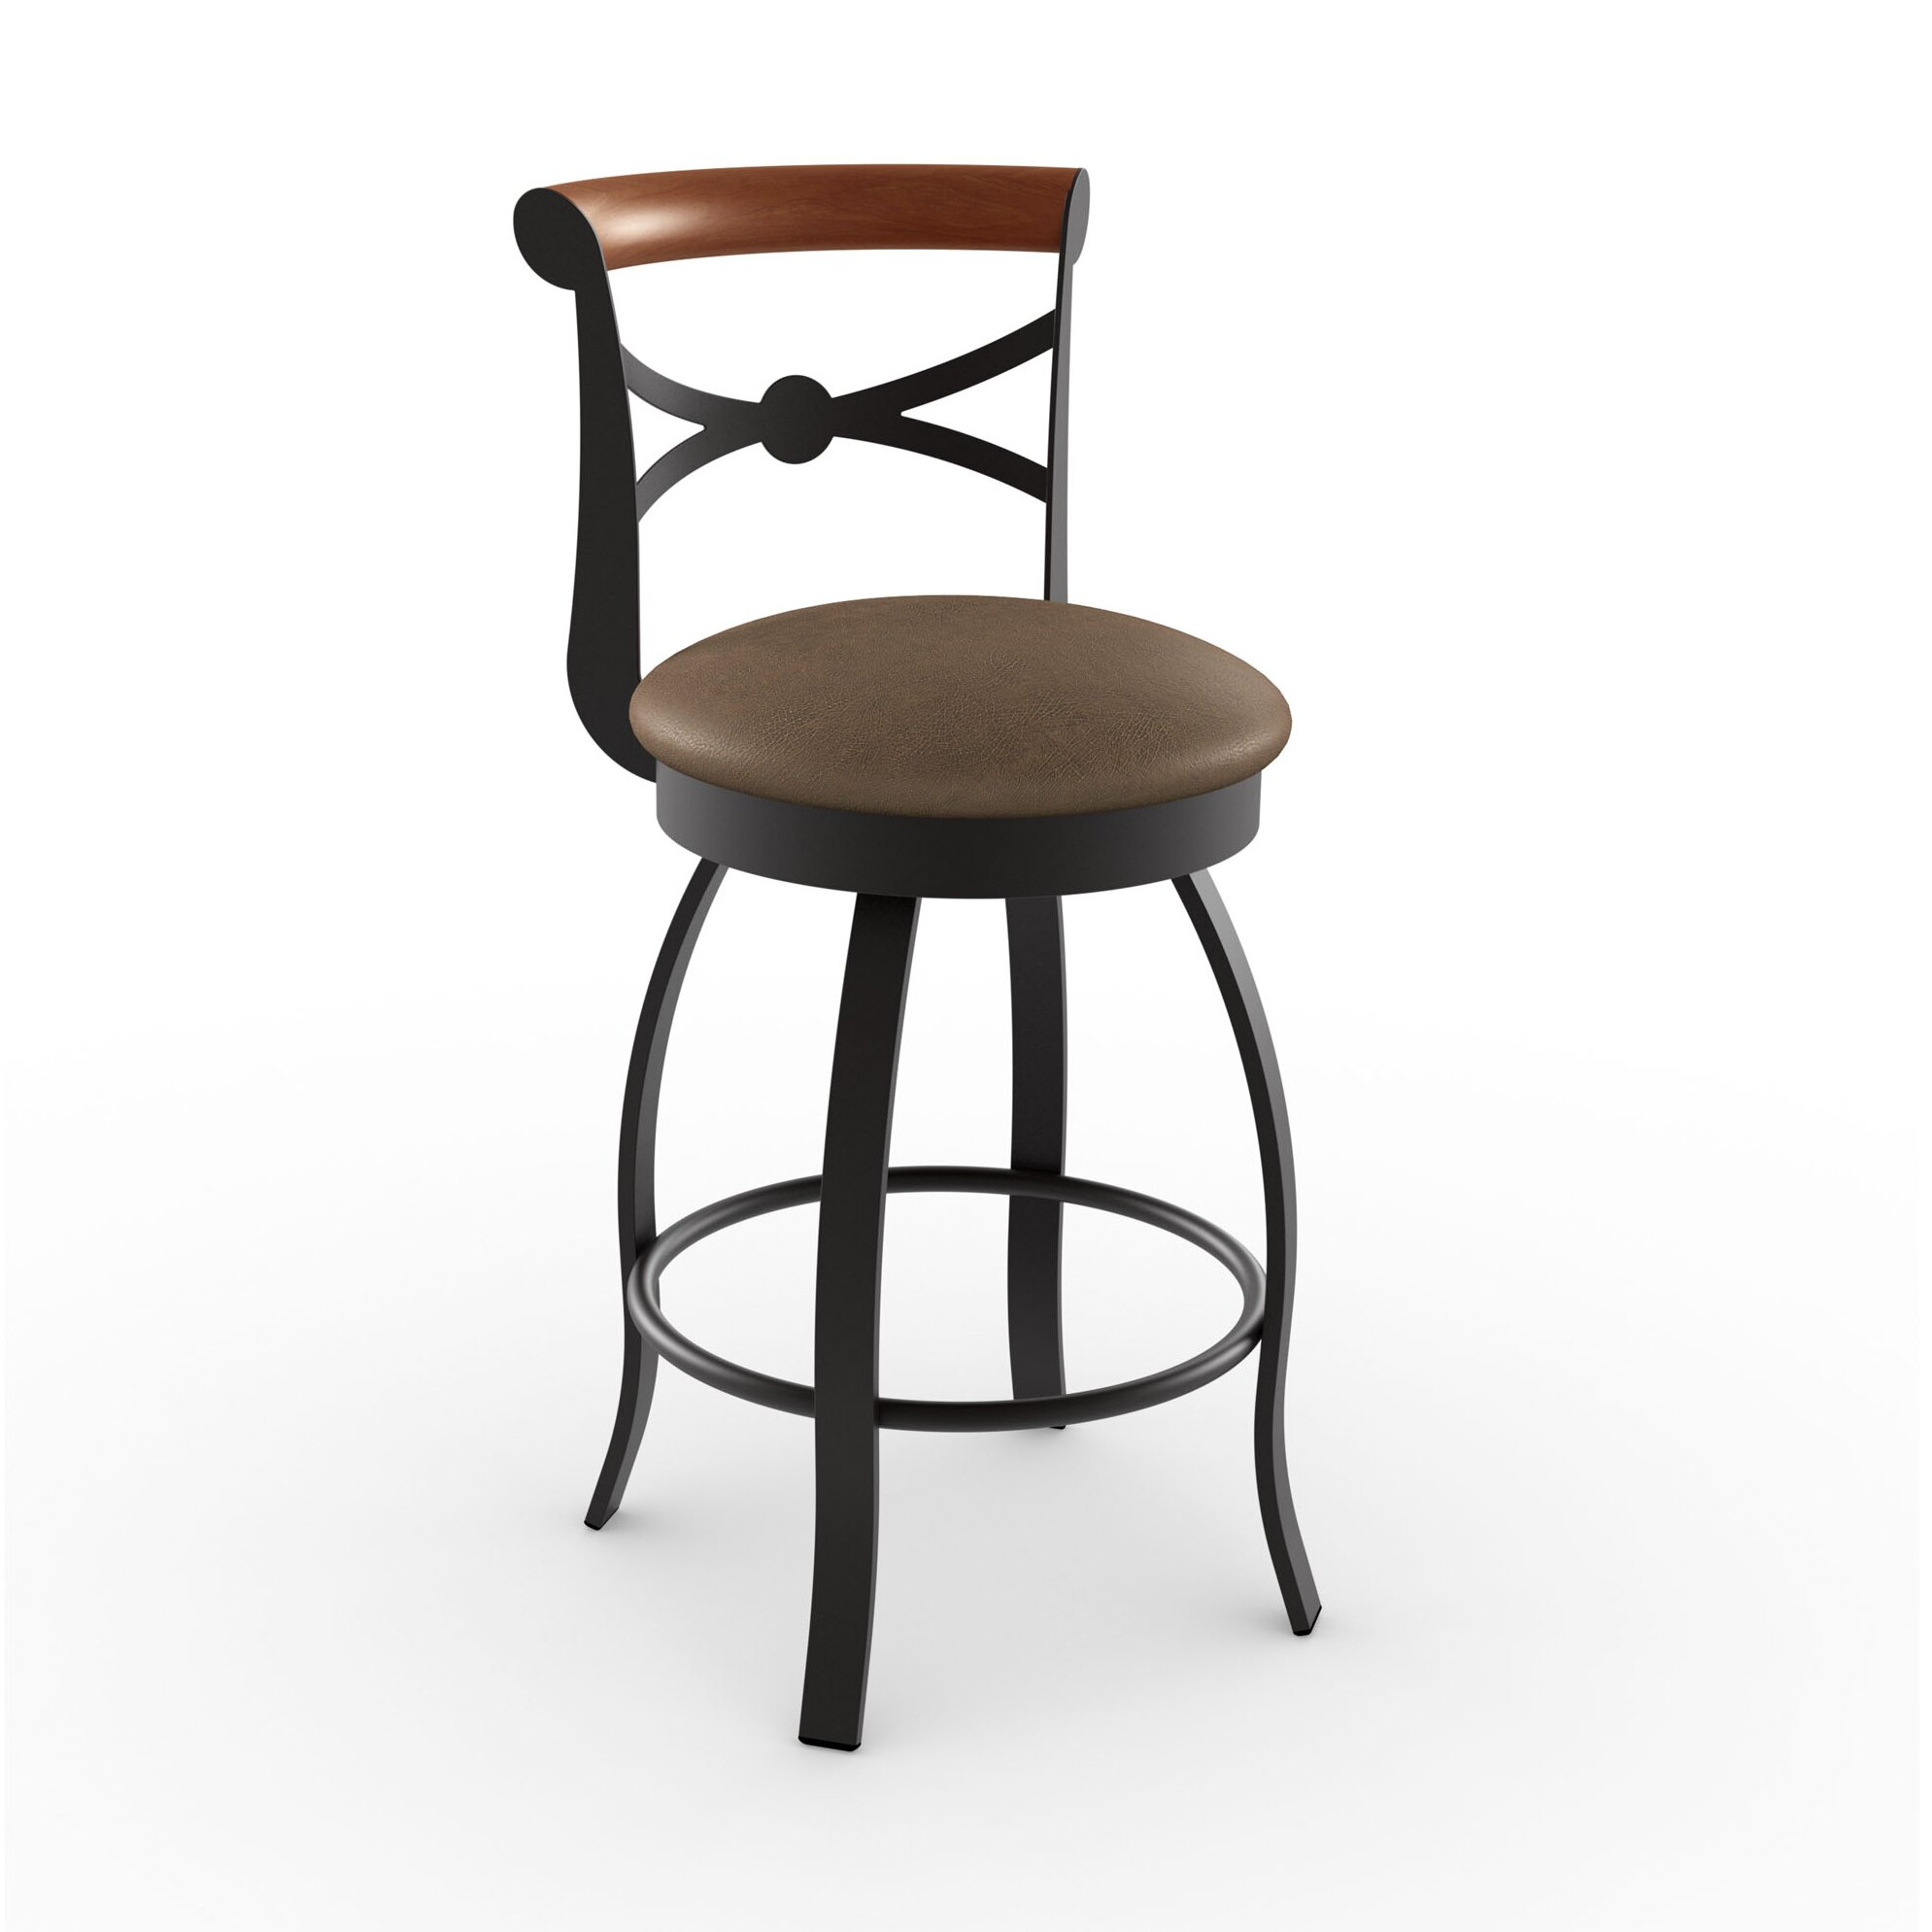 Amisco Library Luxe Style 2575quot Swivel Bar Stool  : Amisco Library Luxe Style 2575 Swivel Bar Stool from www.wayfair.ca size 1989 x 1989 jpeg 188kB